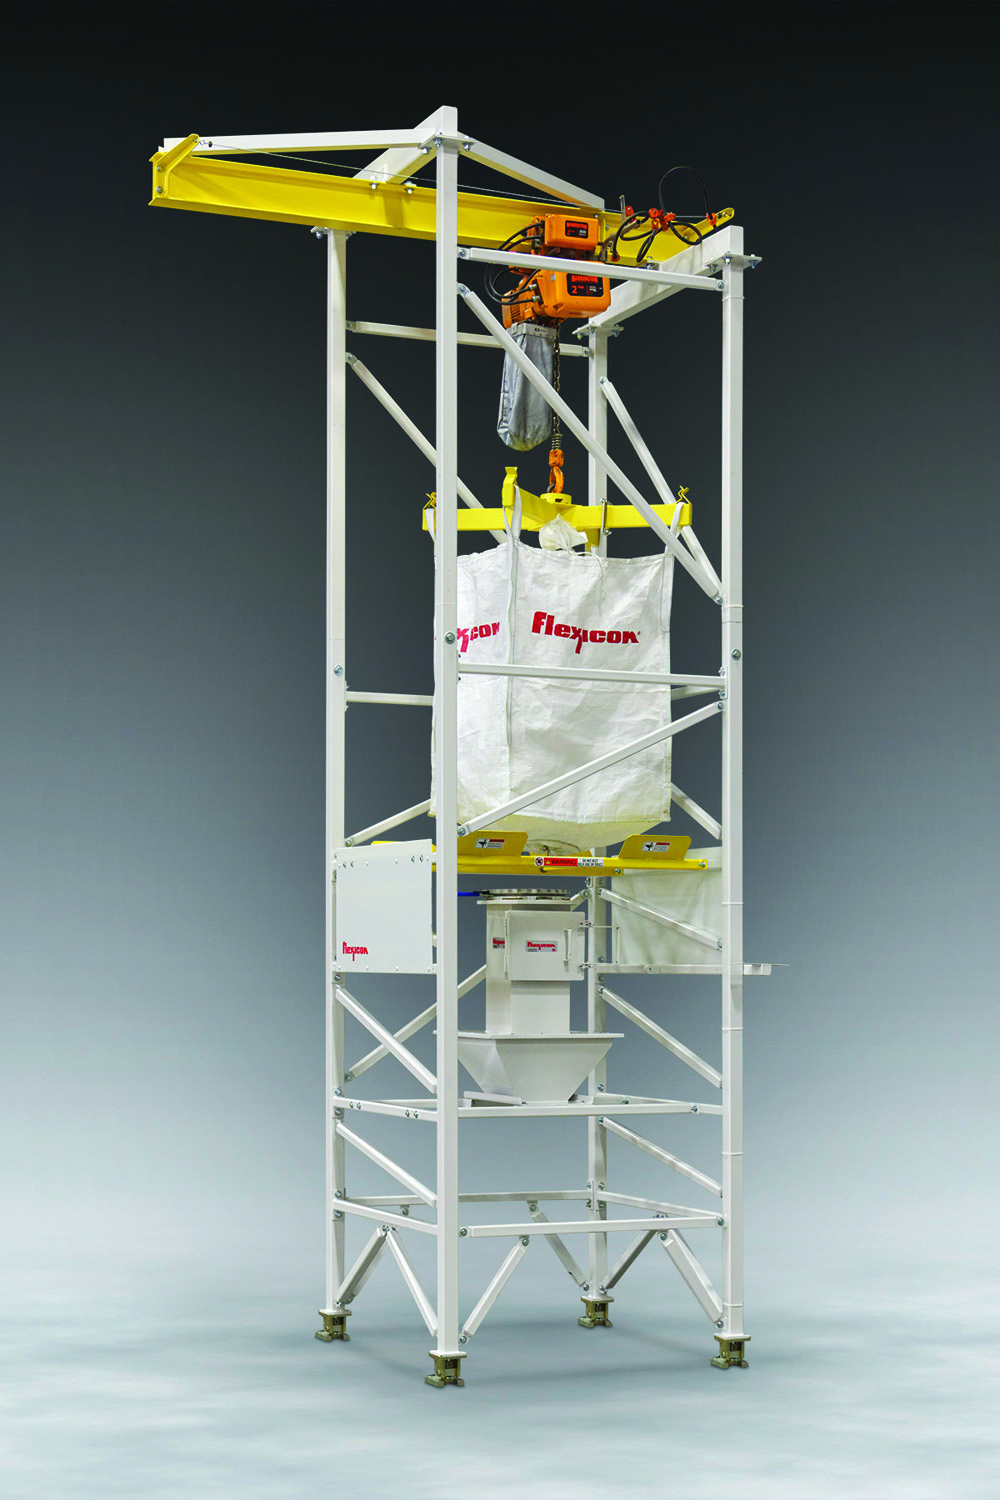 The new BULK-OUT® Bulk Bag Weigh Batch Unloader with seismic bracing